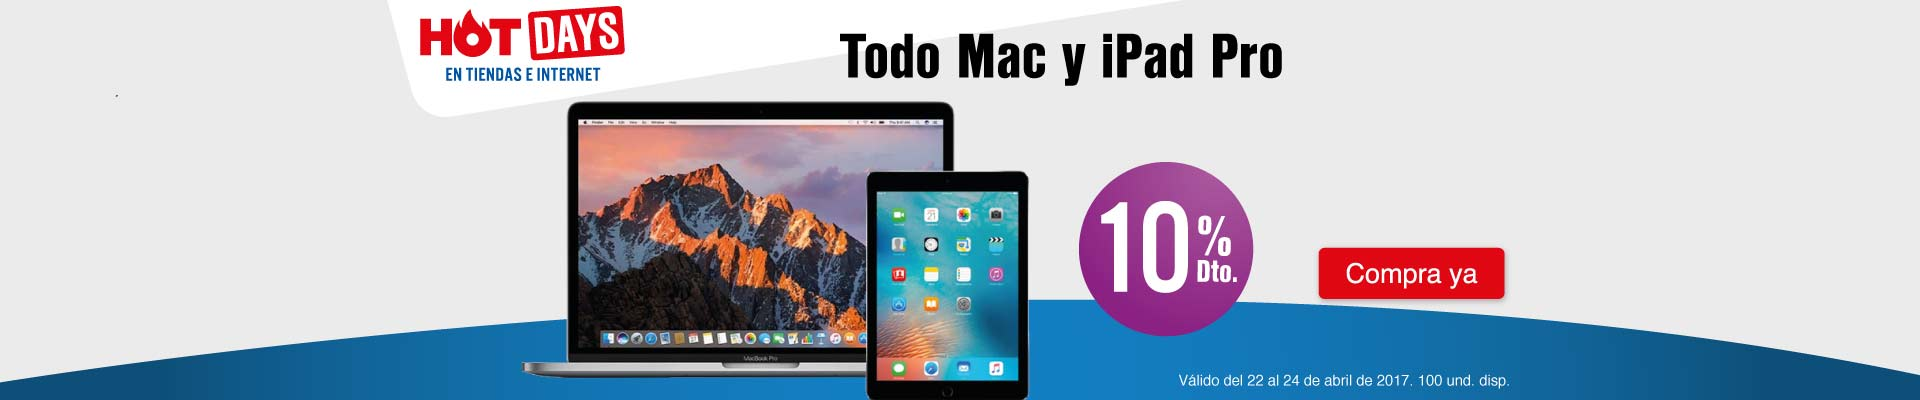 PPAL KT INF - 10% Dto. en todo Mac y iPad Pro - Abr 22 - Hot days